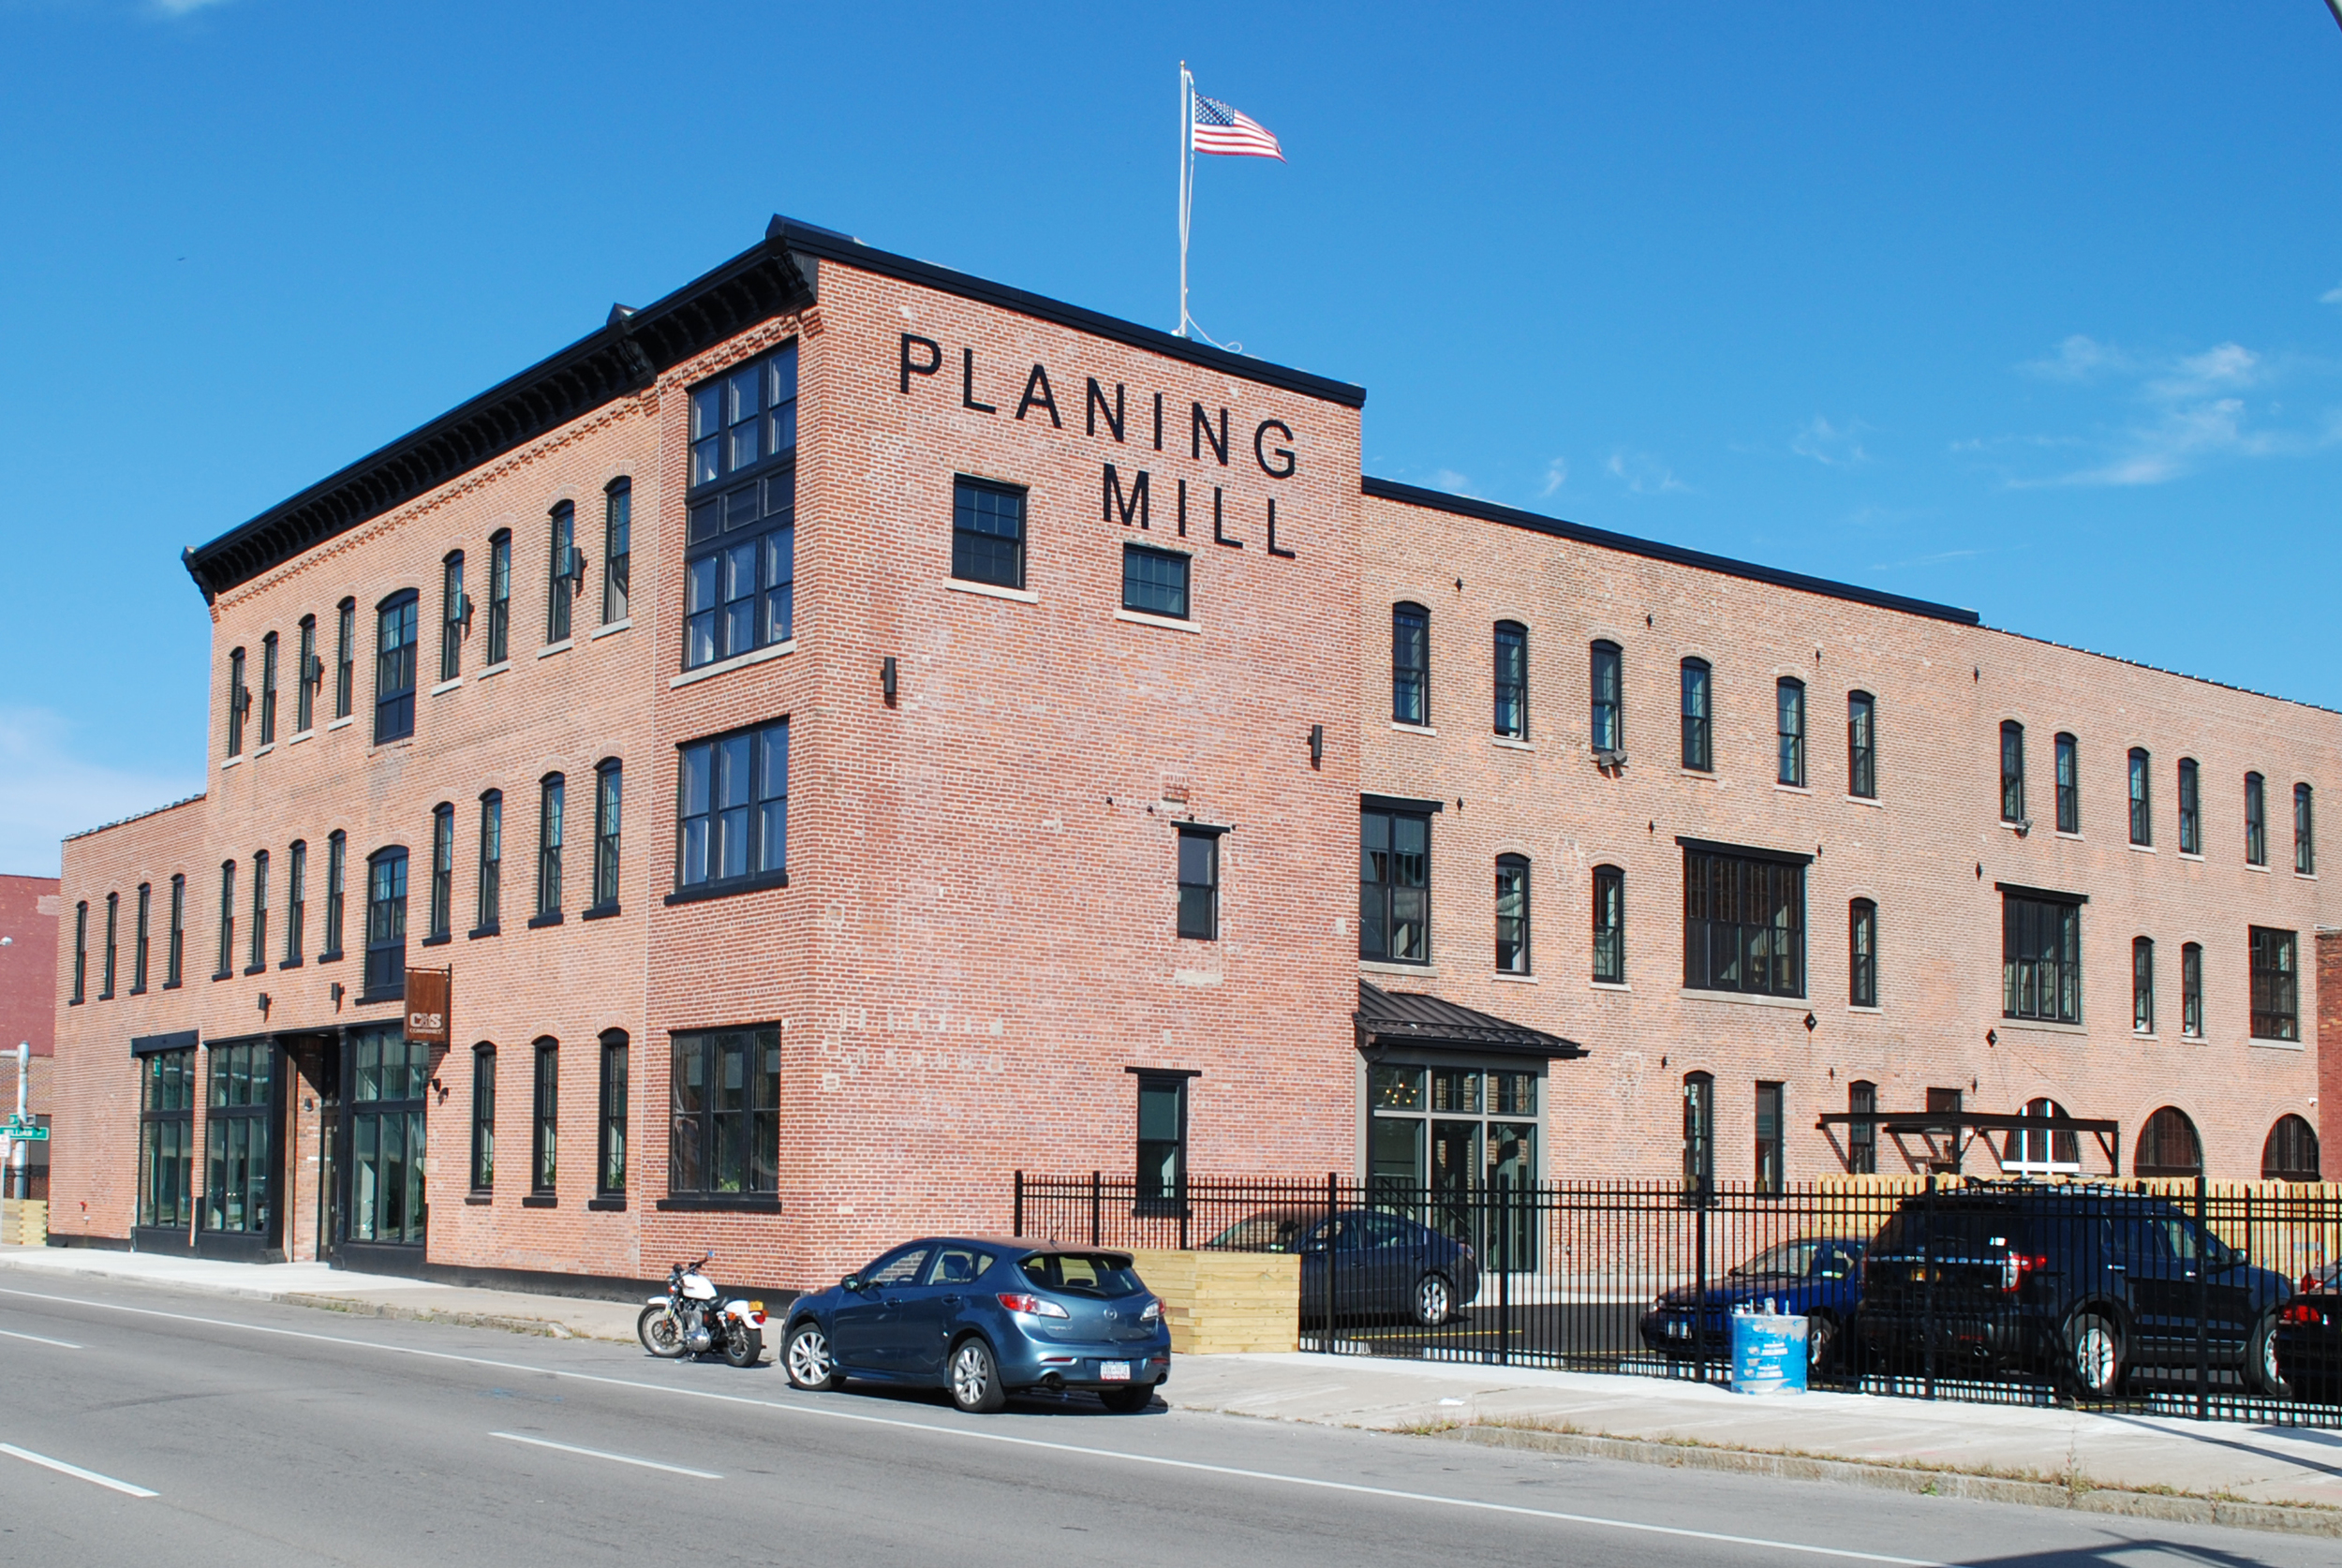 Planing Mill